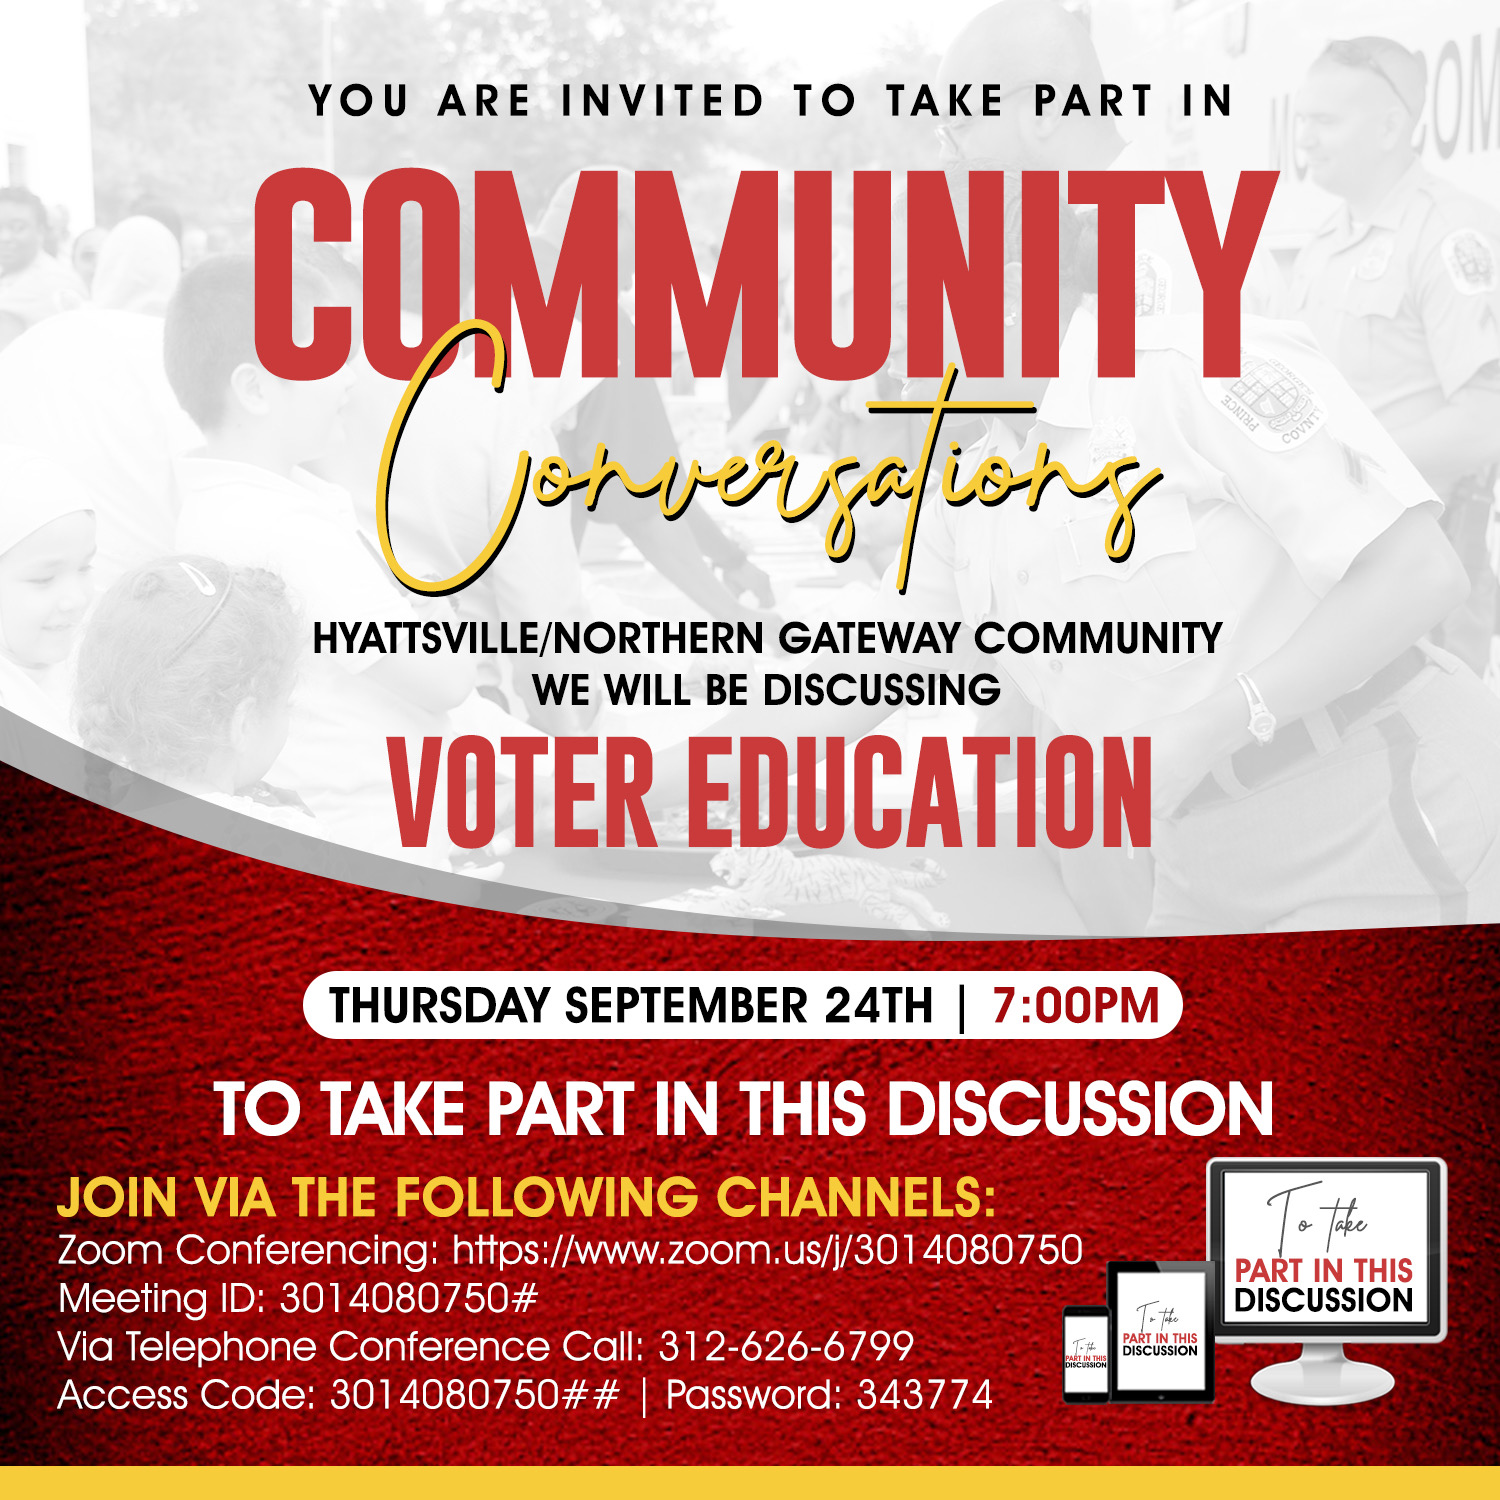 Turner Memorial AME and University Christian Church are hosting a viewing of the documentary, Rigged: the Voter Suppression Playbook as part of the Voter Education Forum.